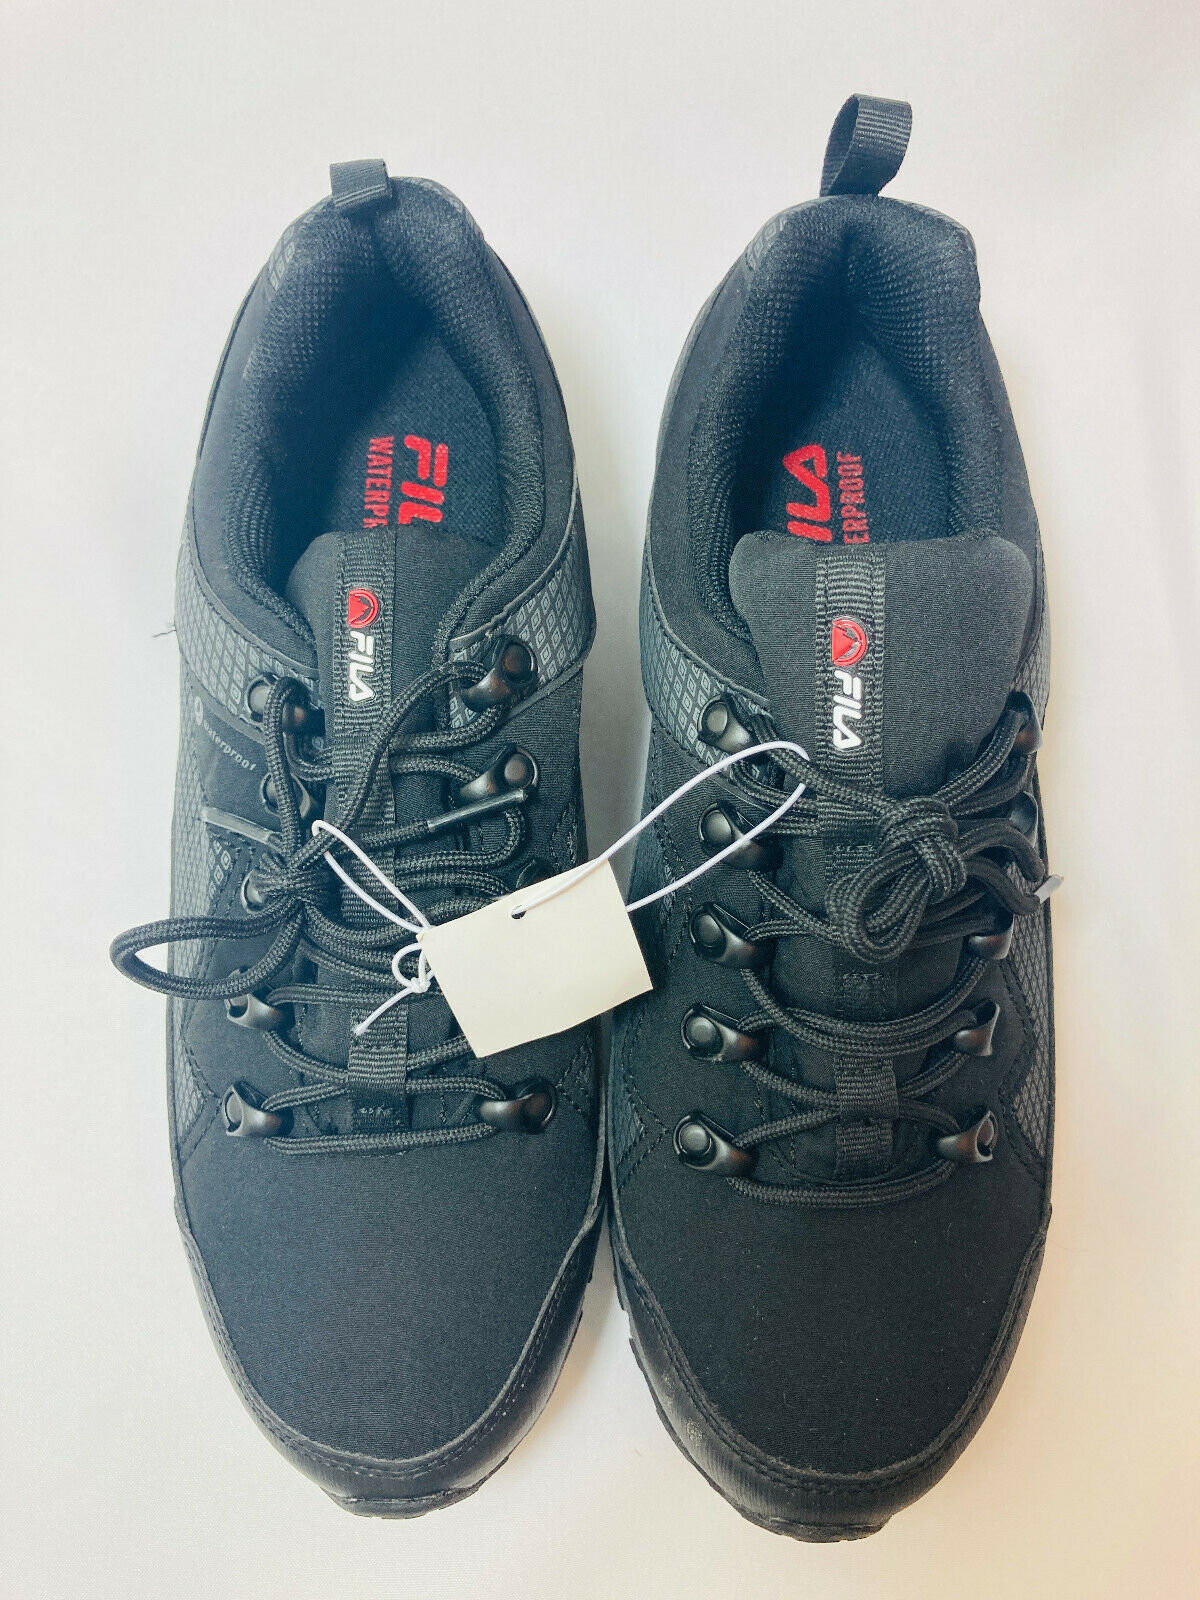 NEW! Fila Men's Switchback 2 Water Proof Hiking Shoe Black/G